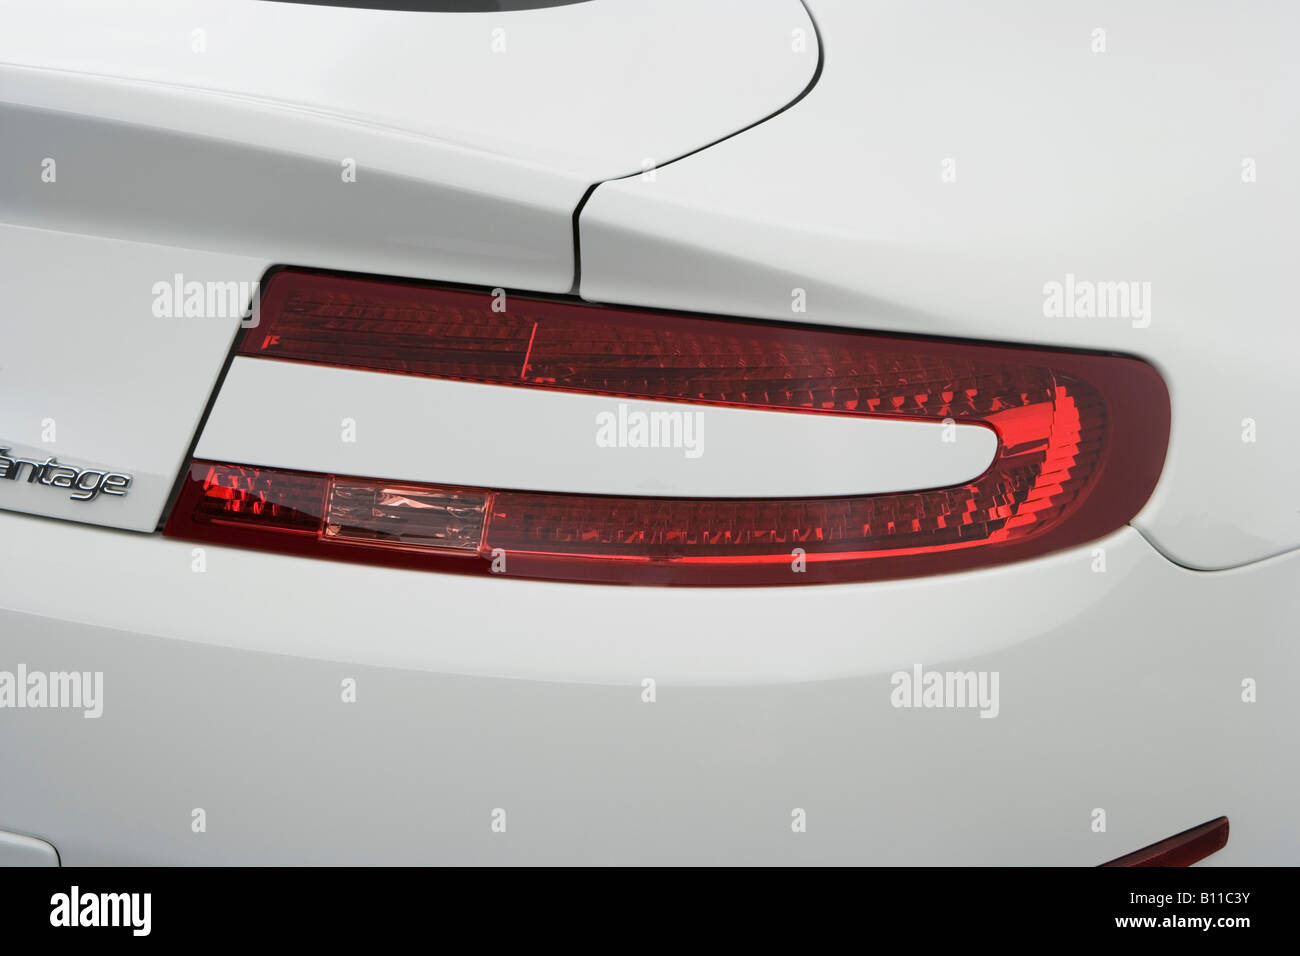 2008 Aston Martin V8 Vantage In White Tail Light Stock Photo